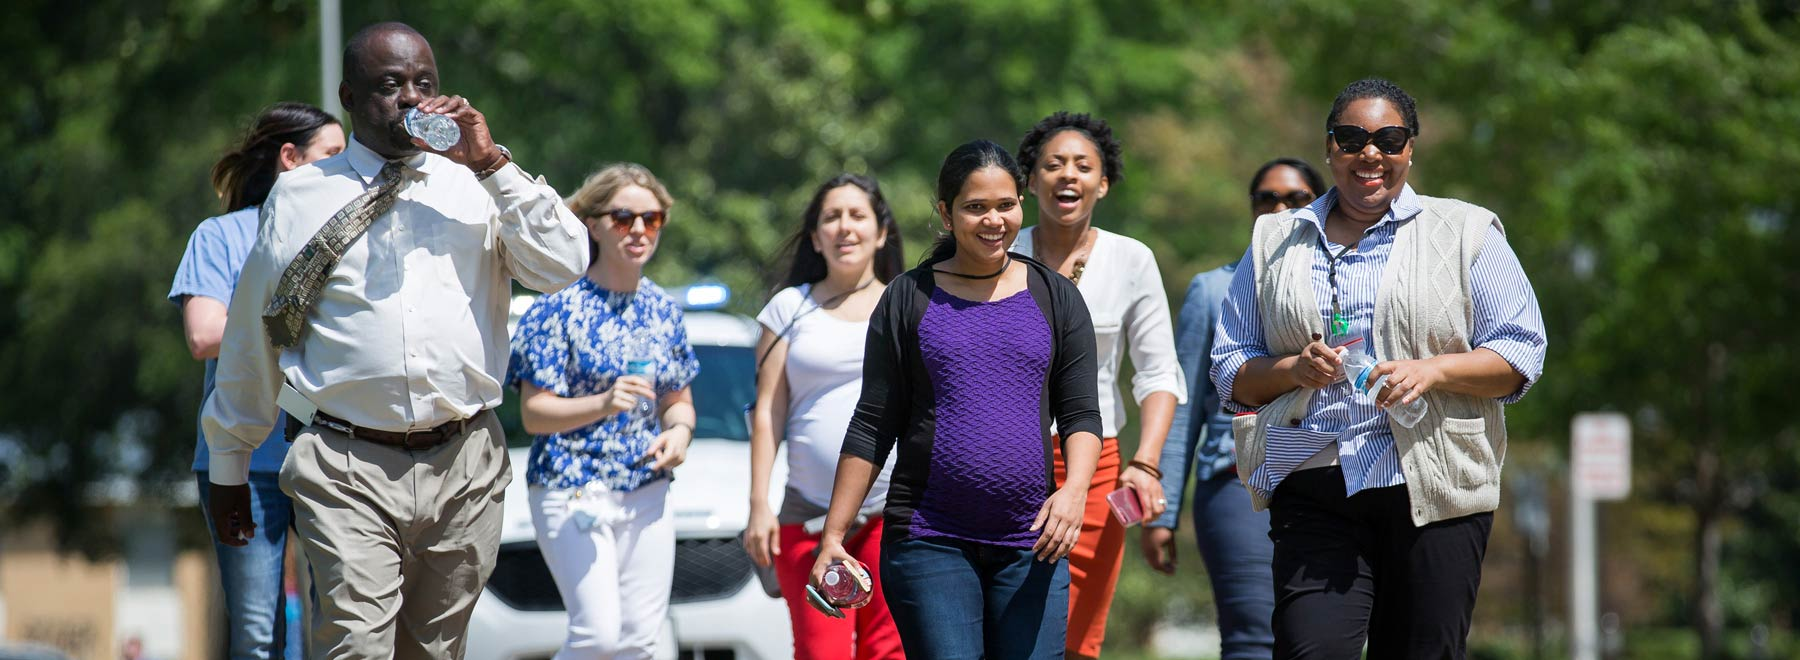 UMMC faculty and staff walking to improve health